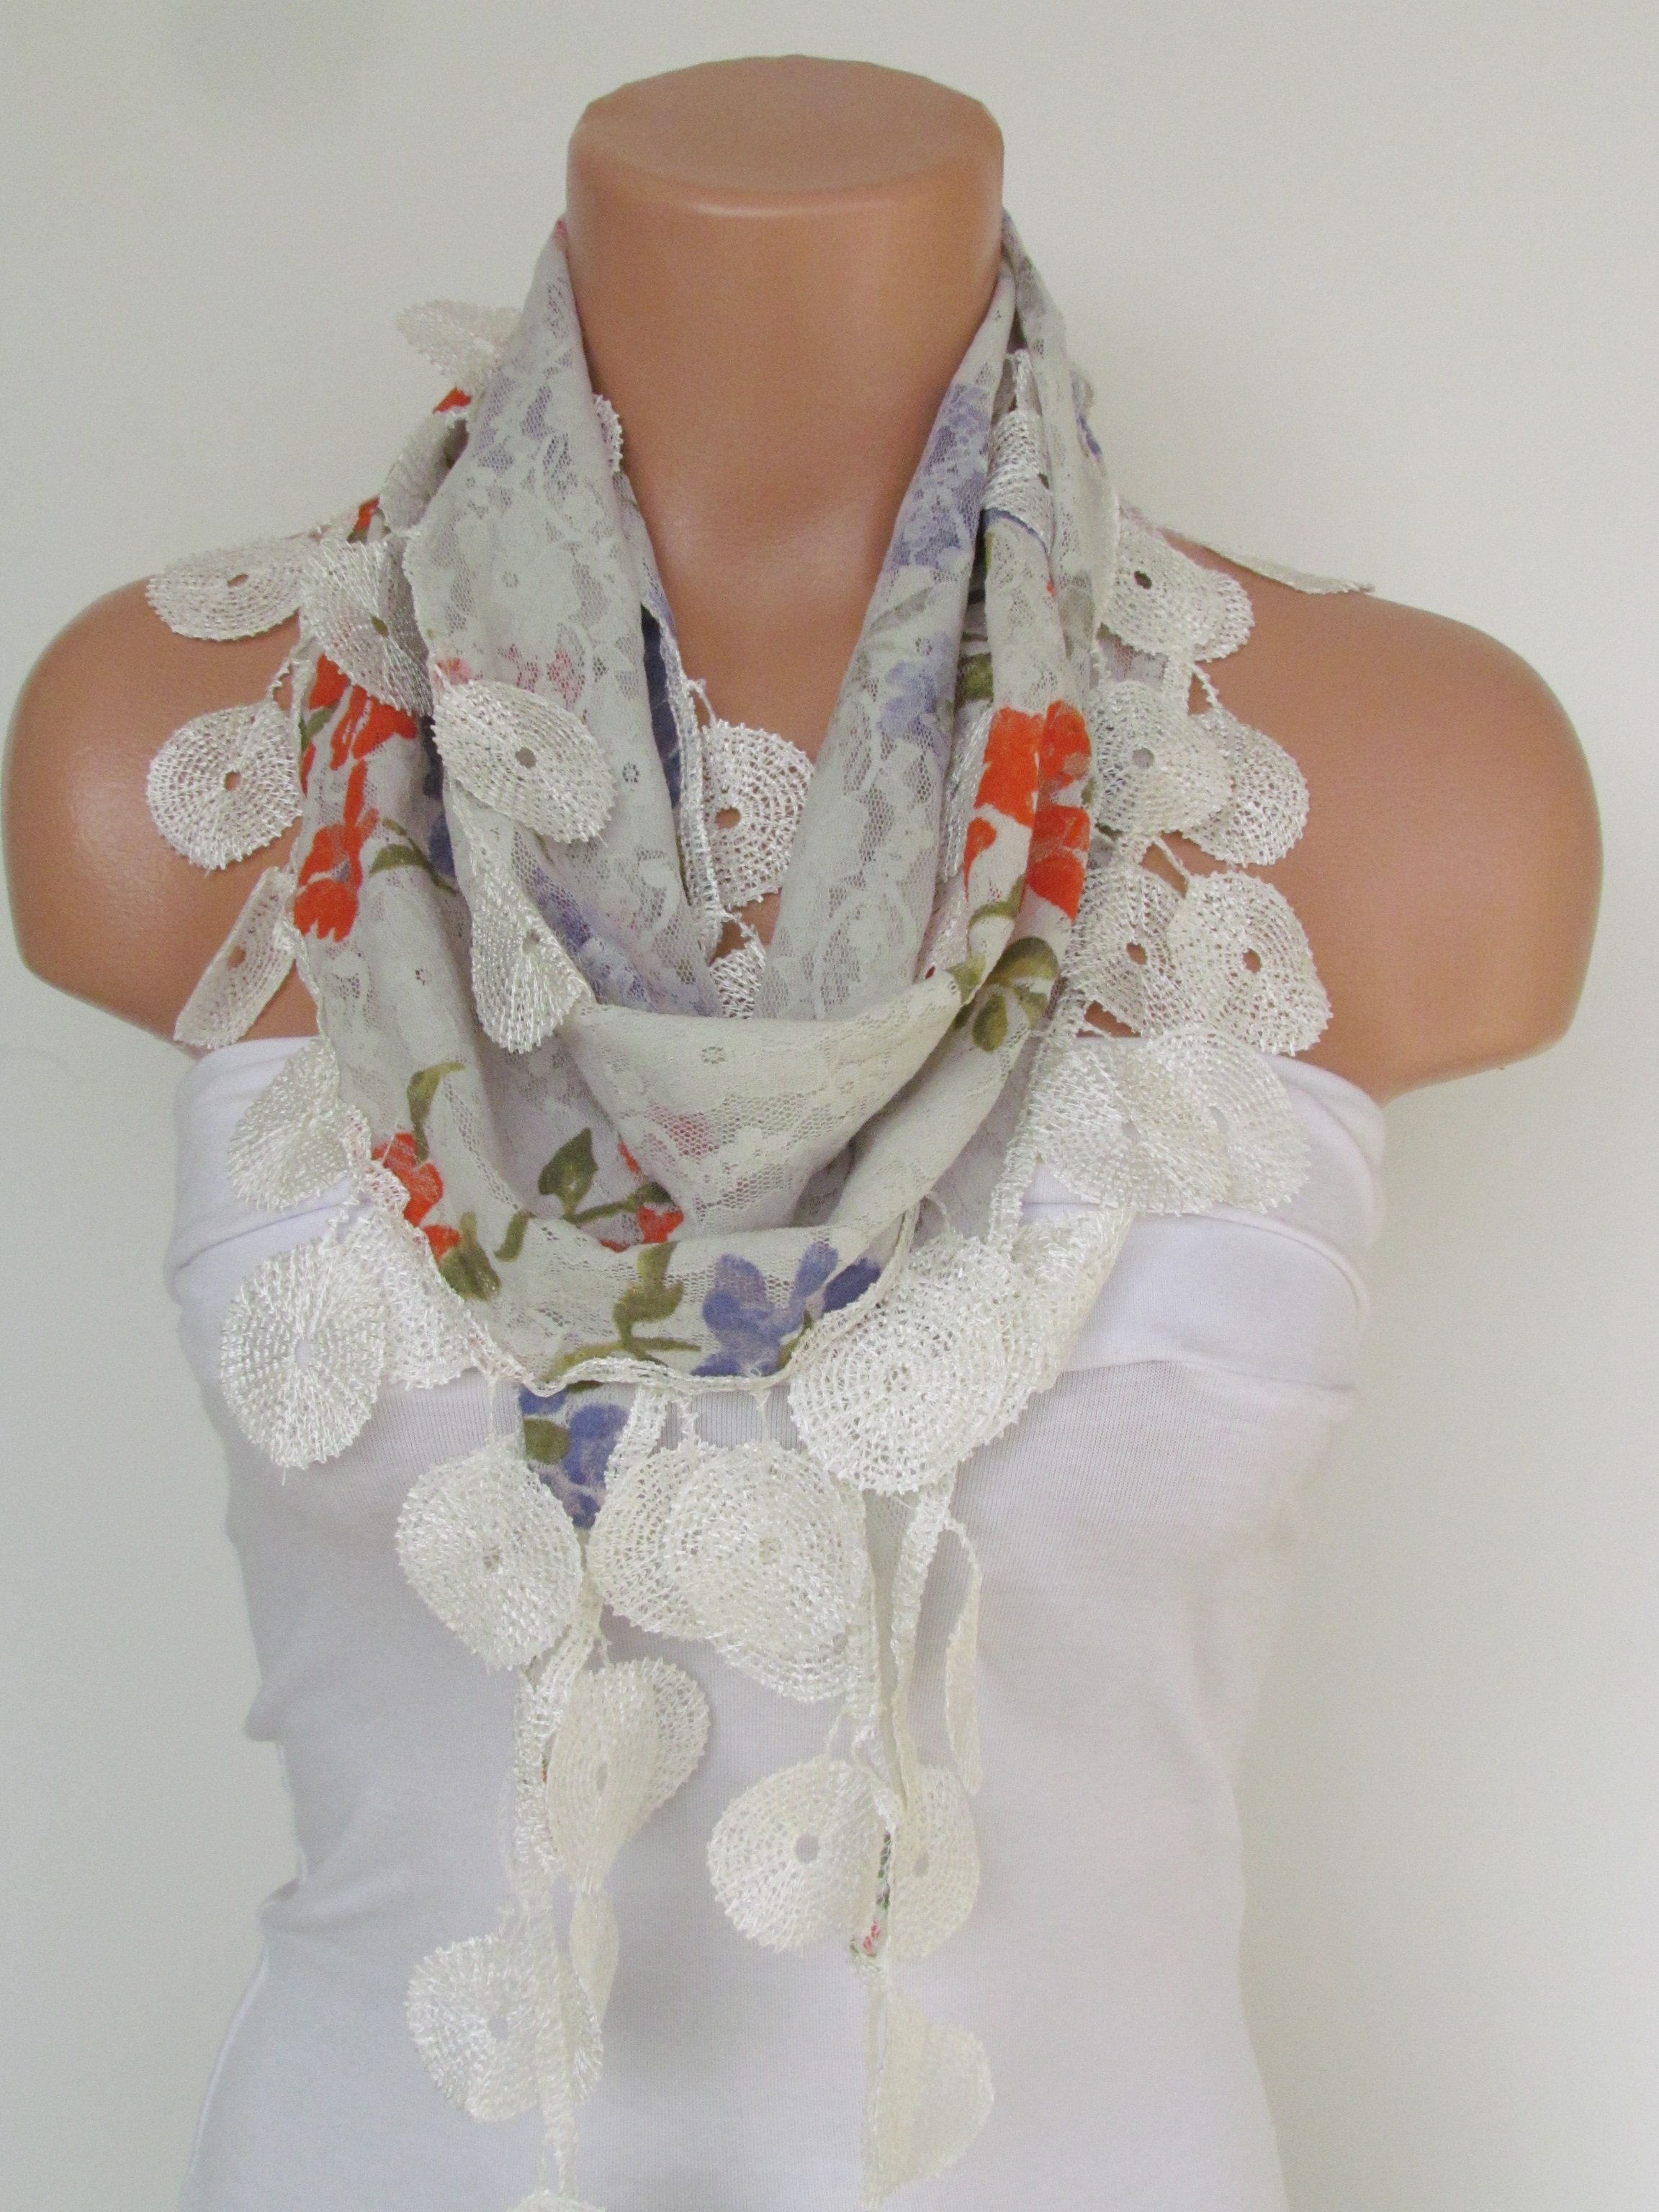 9f7e397a1501c White Floral Lace Scarf With Fringe-Fall Fashion Scarf-Headband-Necklace- Infinity  Scarf-New Season on Luulla